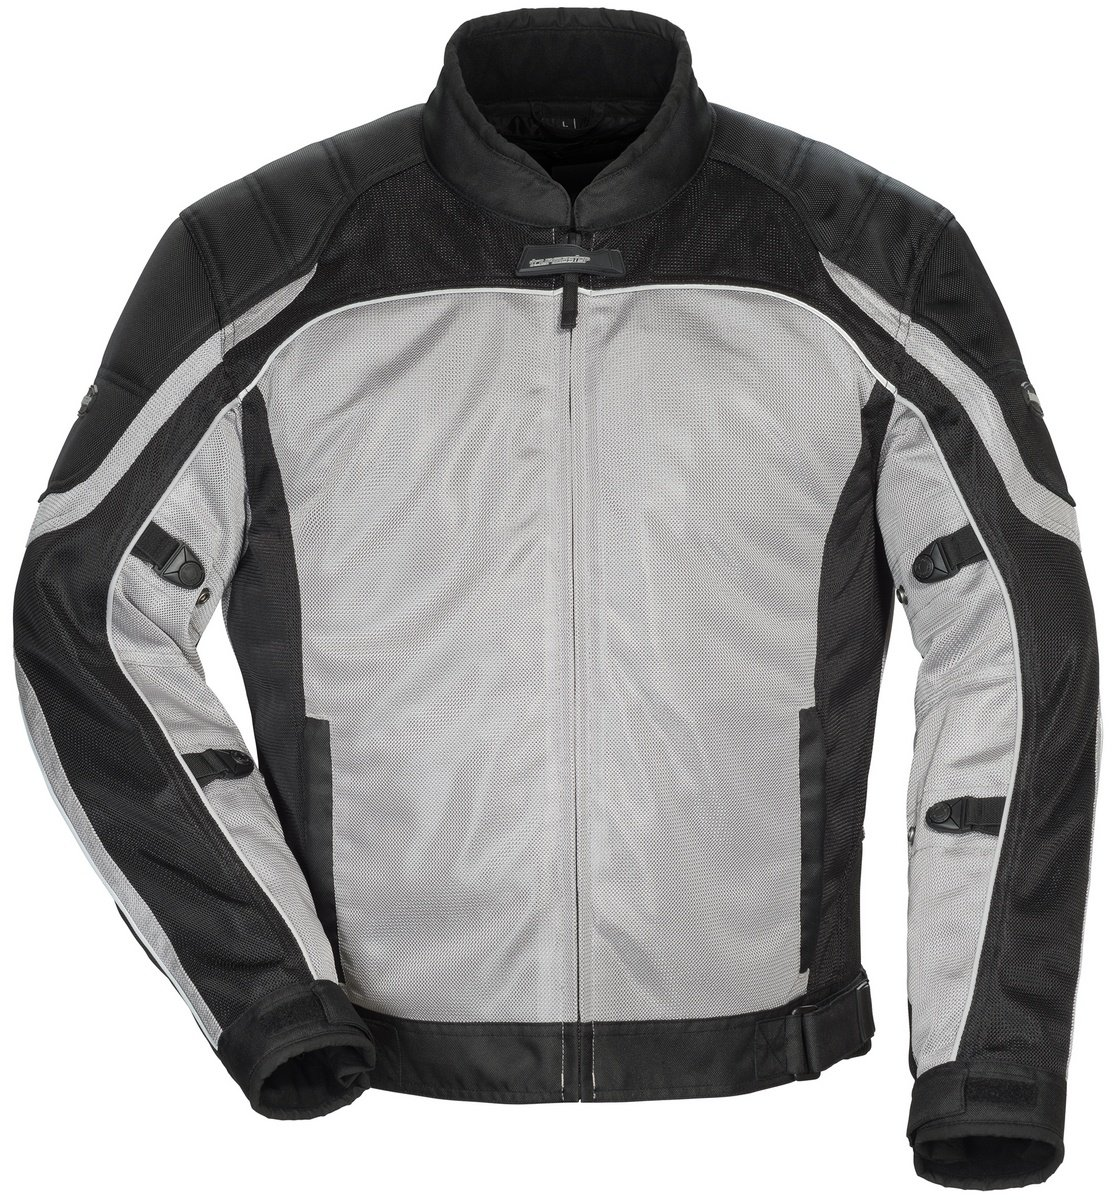 TourMaster Women's Intake Air 4.0 Jacket (Silver/Black, Medium)